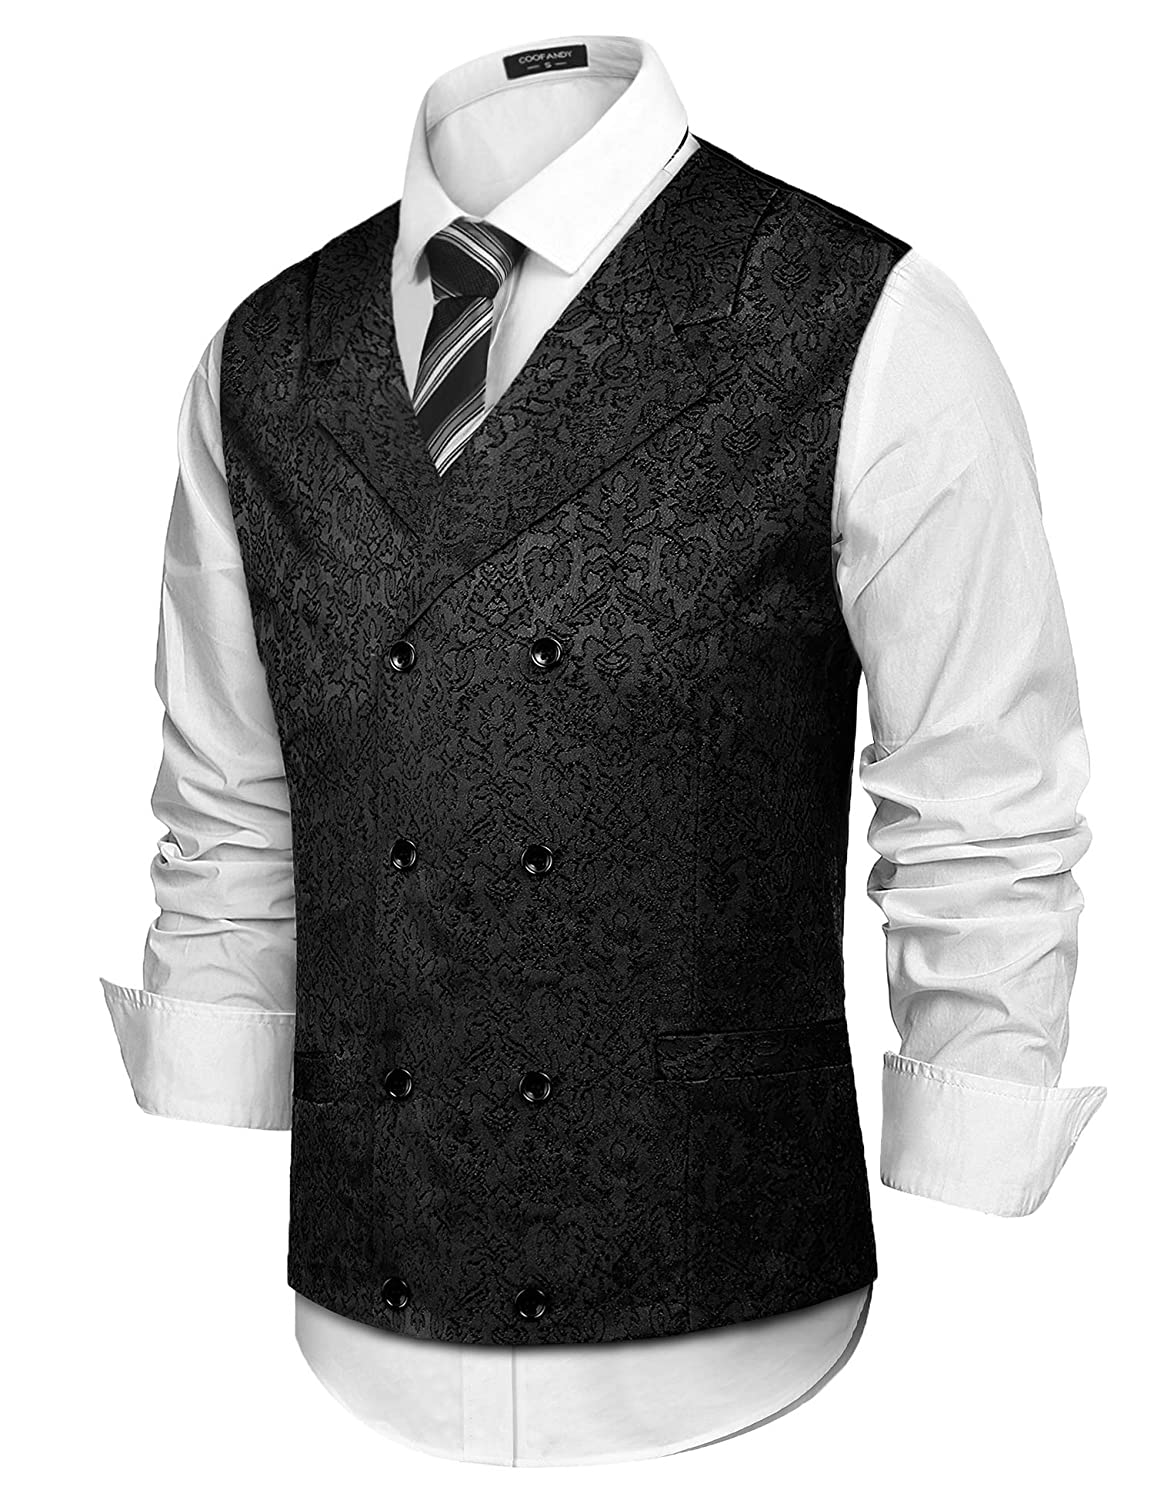 Vintage White Jacquard Vest Double breasted Royal Victorian gentleman Waistcoat